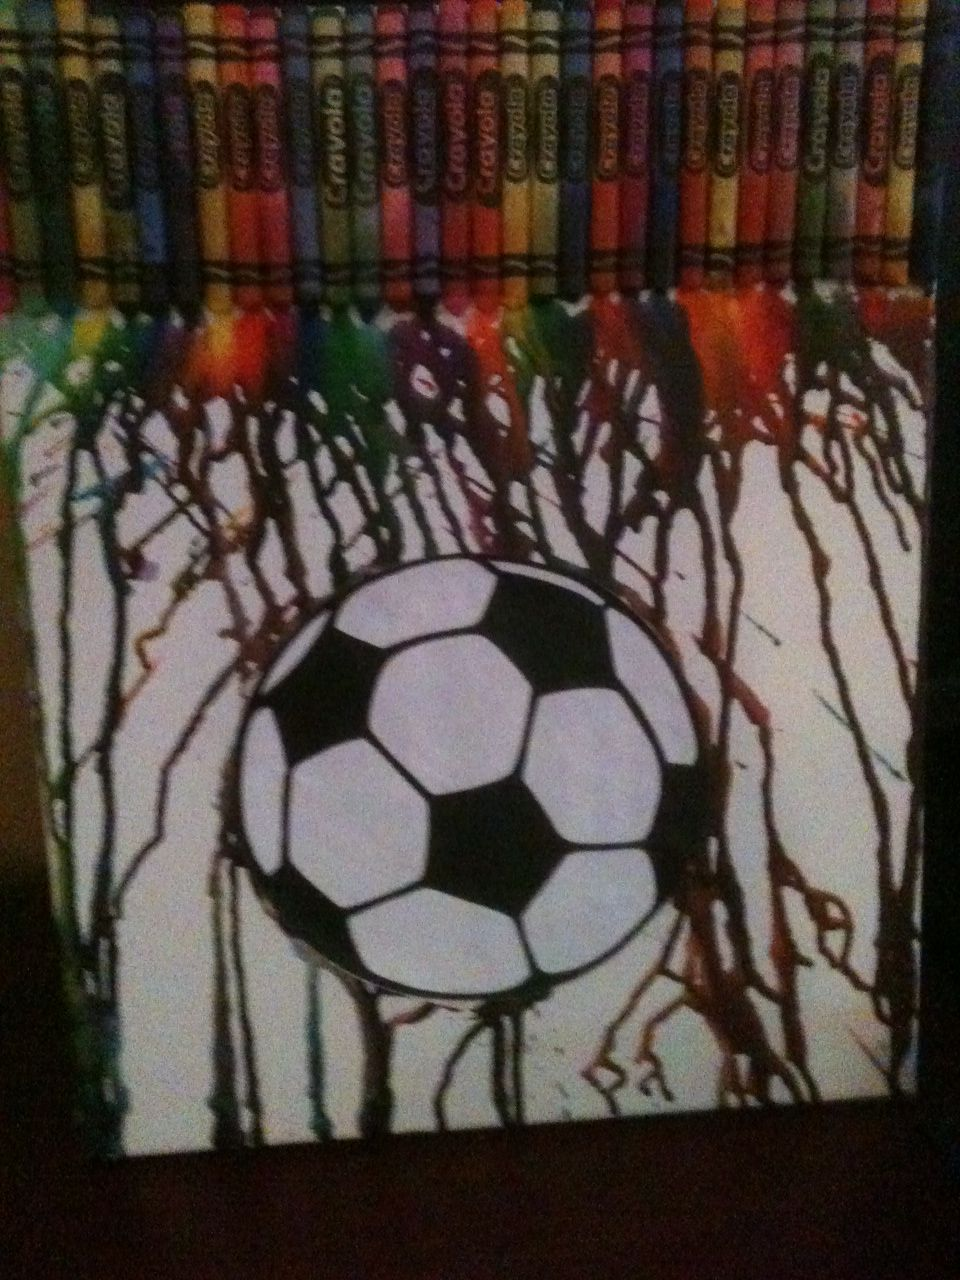 Craft #16 - melted crayons on canvas.  She REALLY liked this one.  Tried to use some parchment paper to create a circle void in the middle - but that didn't work very well for her.  She glued a soccer ball cut out onto where the void should have been.